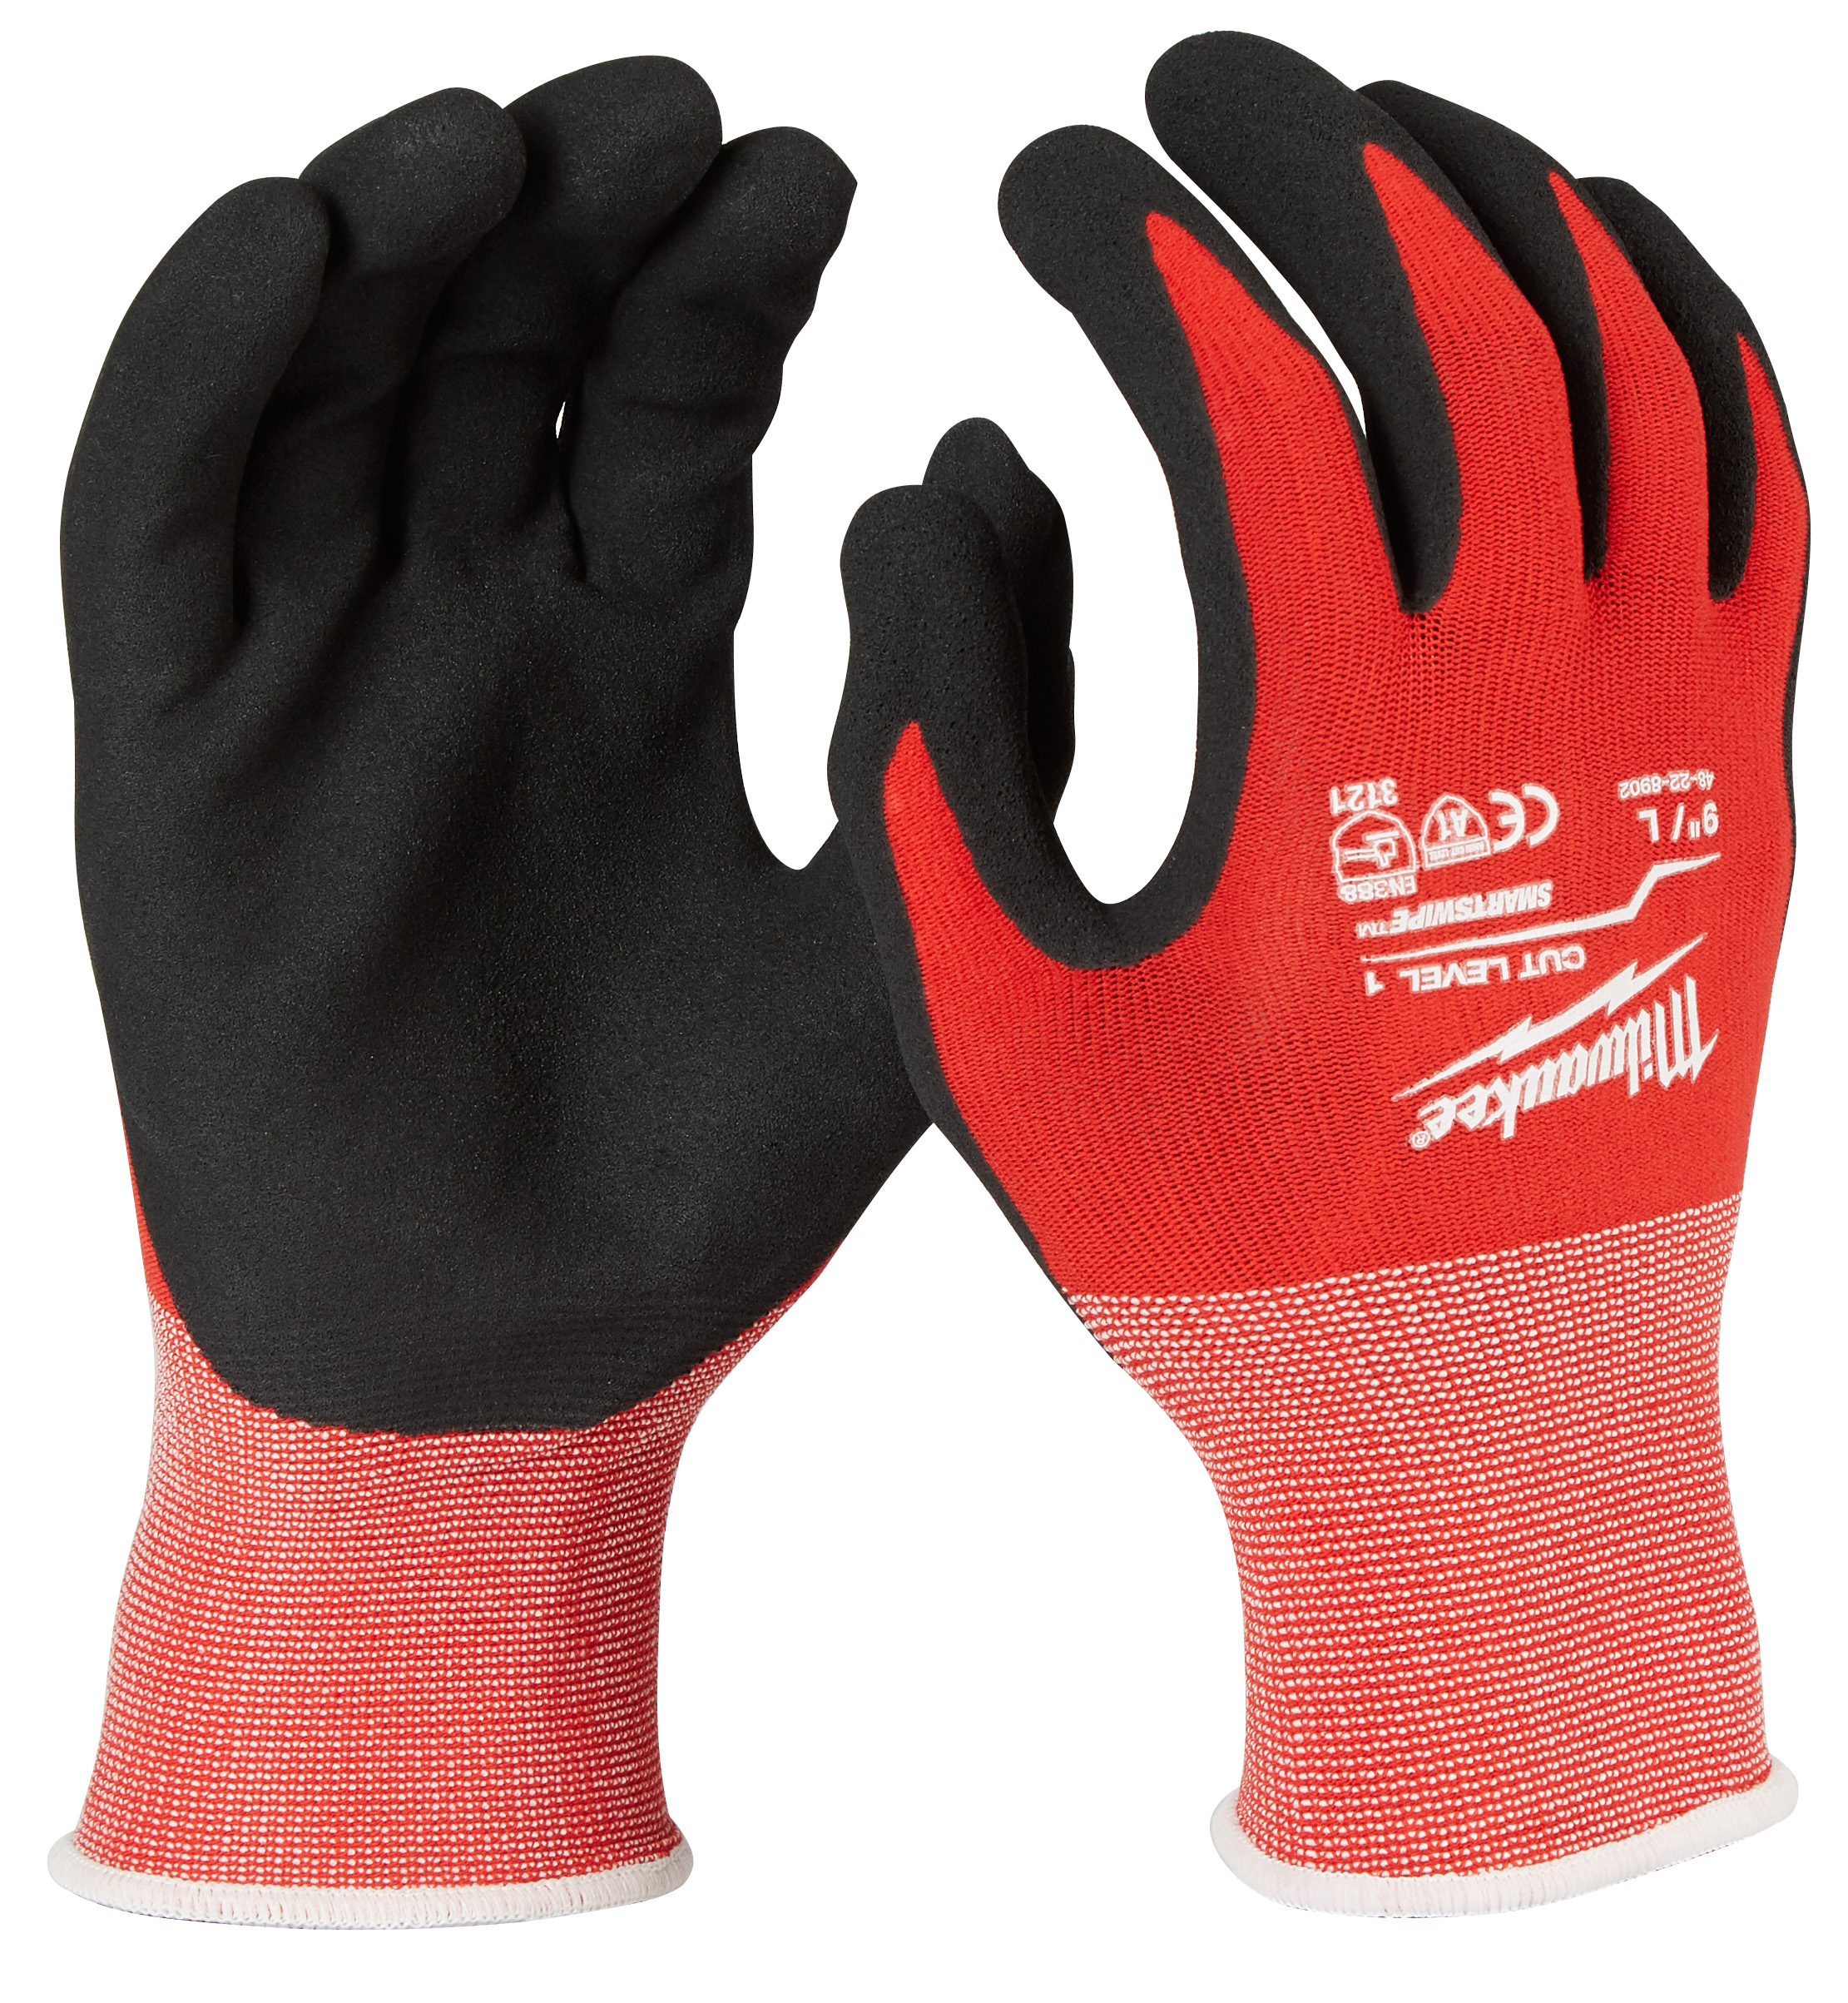 MILWAUKEE 48-22-8902 (6) CUT 1 NITRILE GLOVES - L